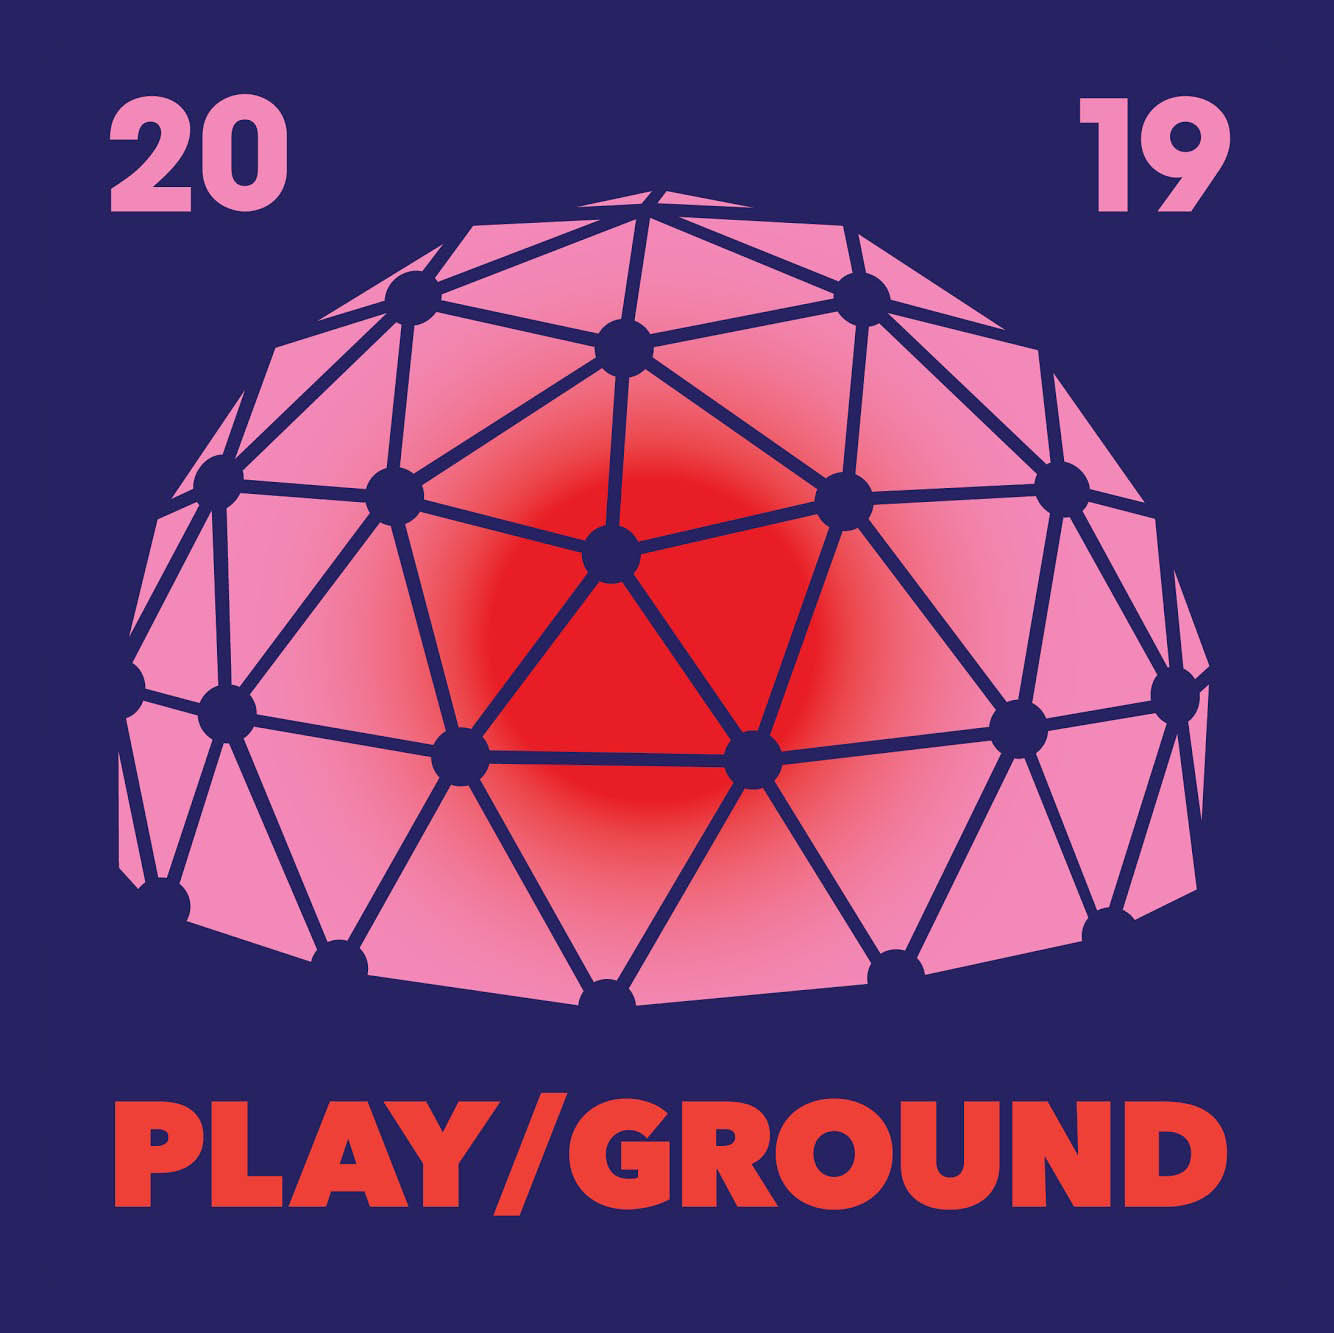 PlayGround-2019-white-border-01